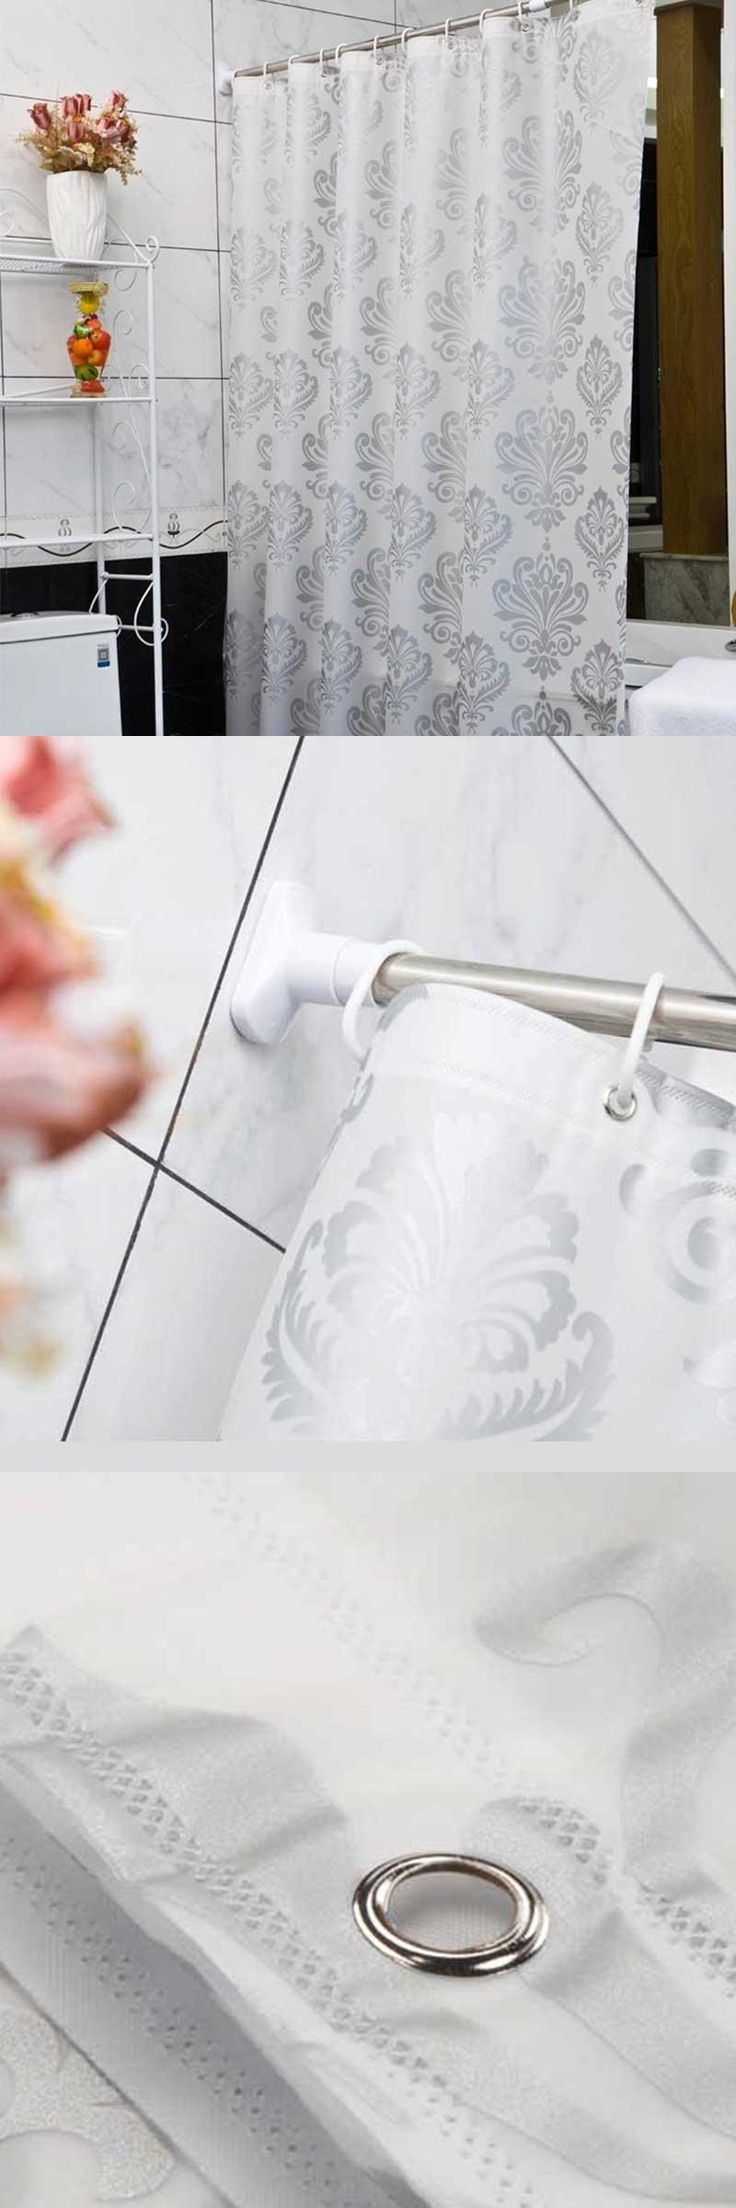 [Visit to Buy] Europe White PEVA Bath Curtains Flower Eco-friendly Waterproof Shower Curtain Bathroom Product Cortina Ducha High Quality #Advertisement